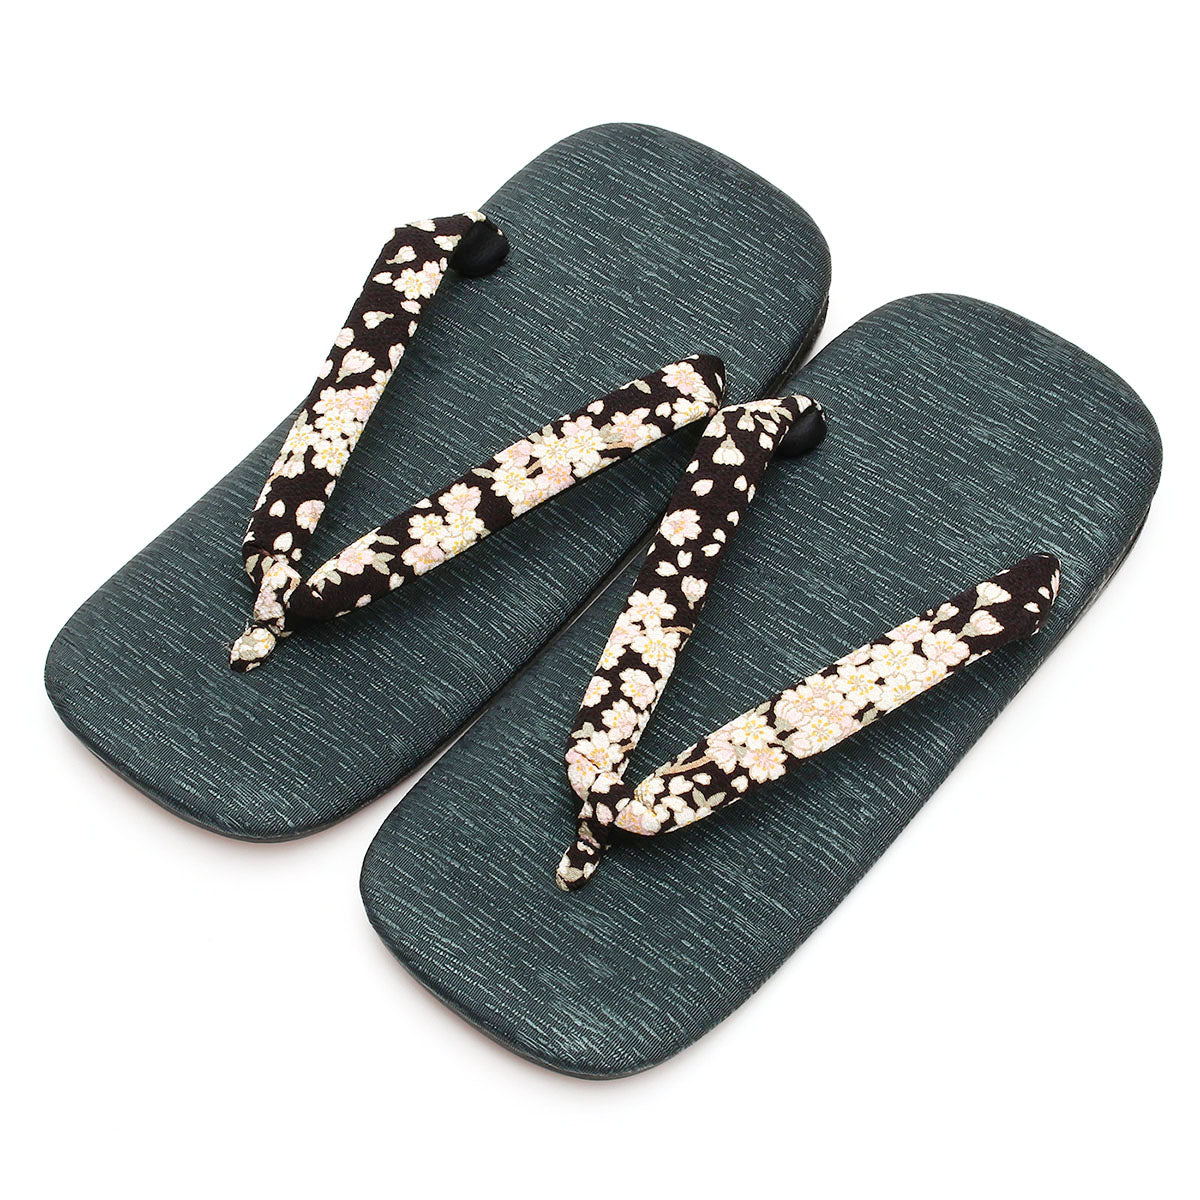 Men's Japanese Leather Soled Geta & Zori Sandals flip-flops Handmade -Sakura Cherry Blossoms